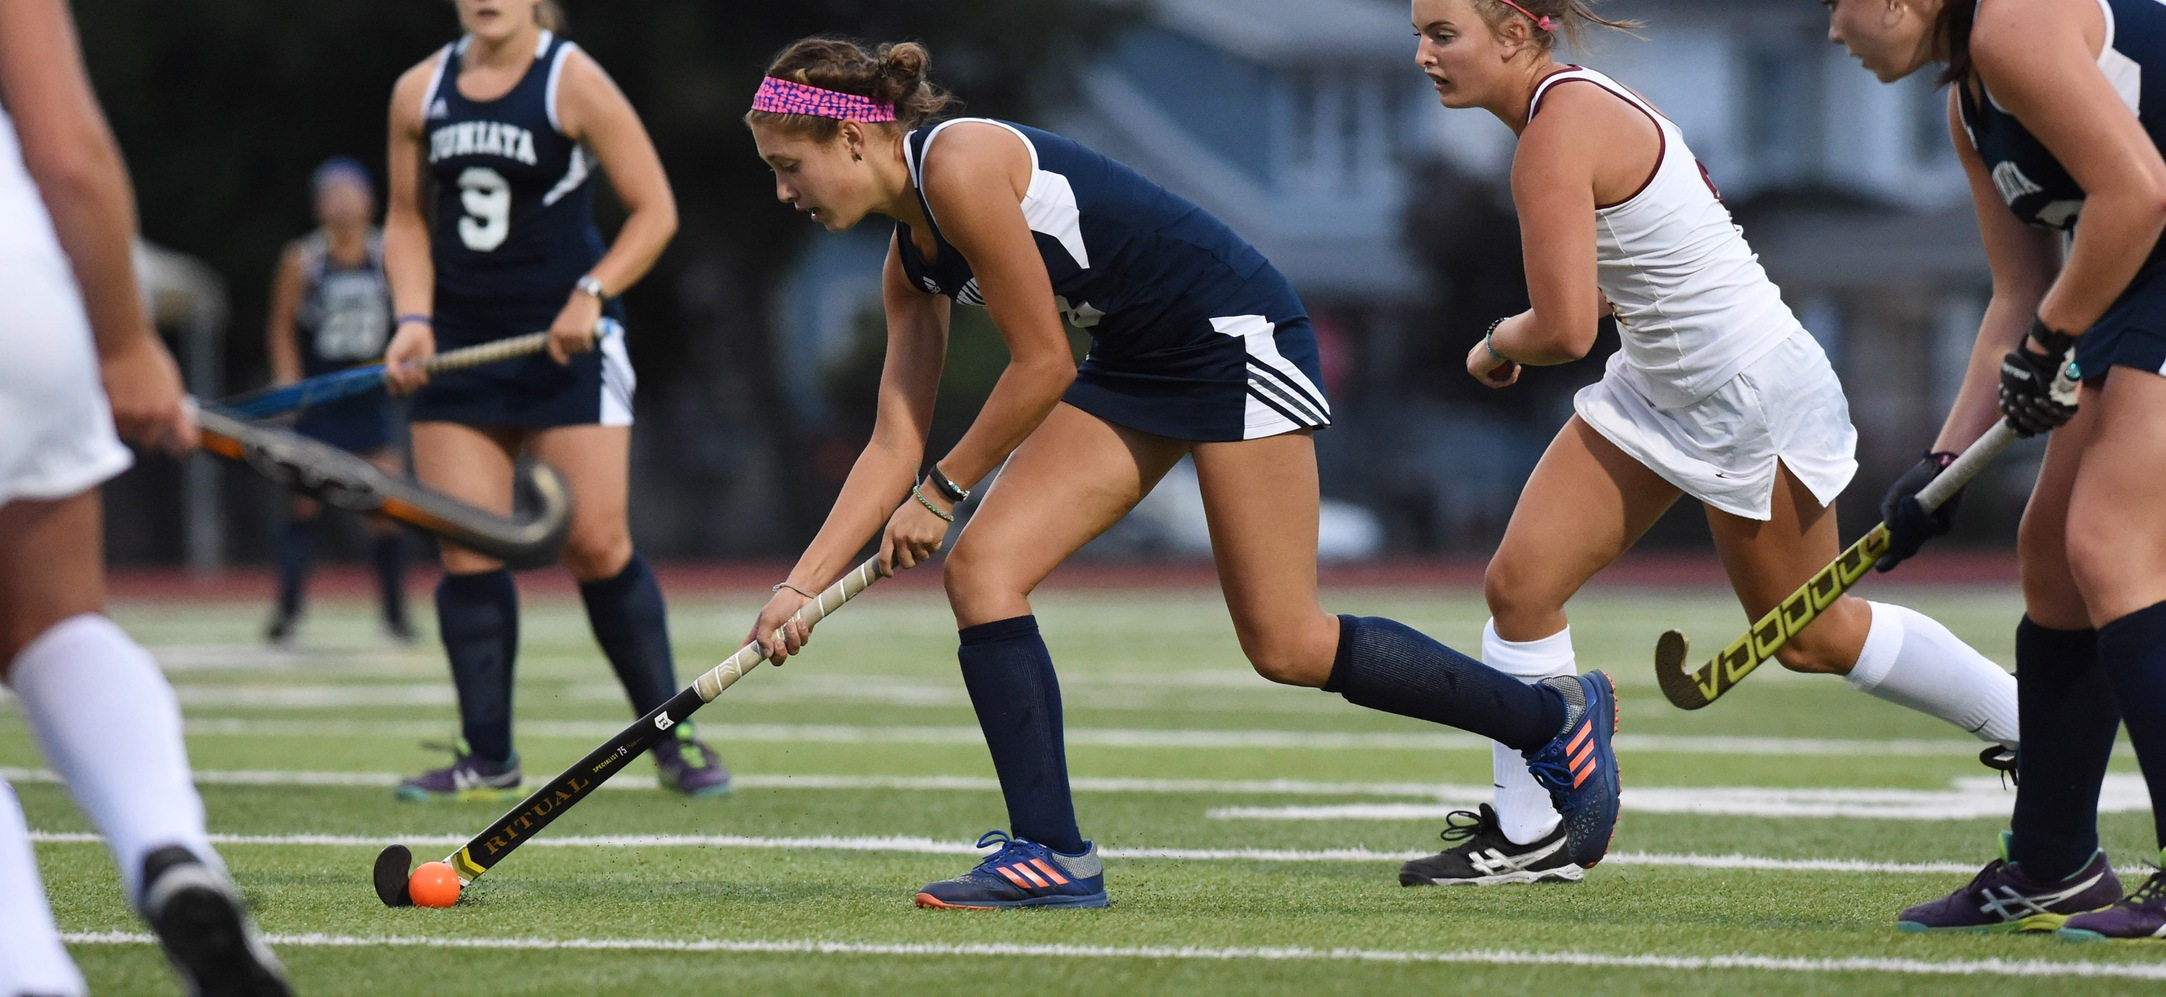 Grace Alexander scored the Eagles lone goal in a 5-1 loss against TCNJ.